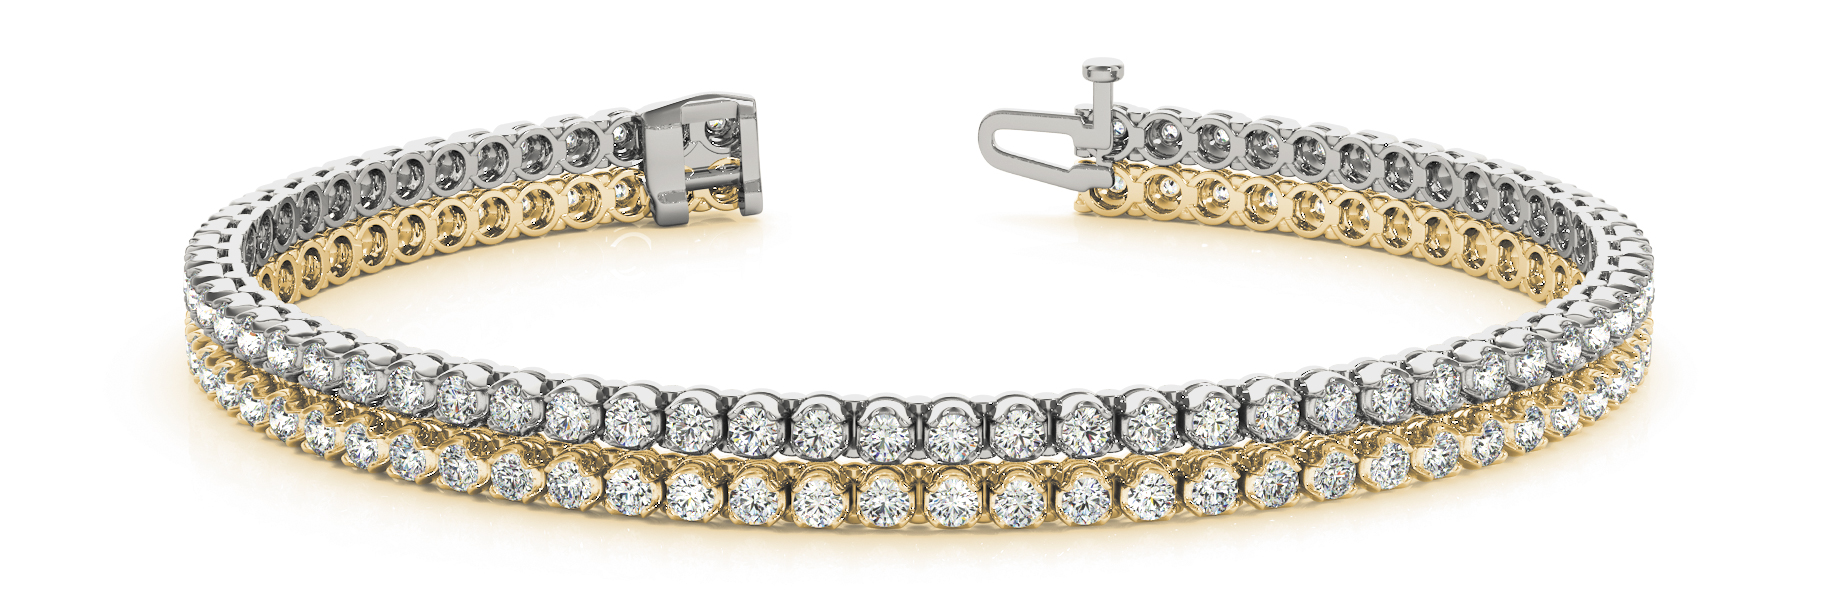 Multi Row Duo Round Diamond Bracelet 1.86 Ct. Yellow and White Gold